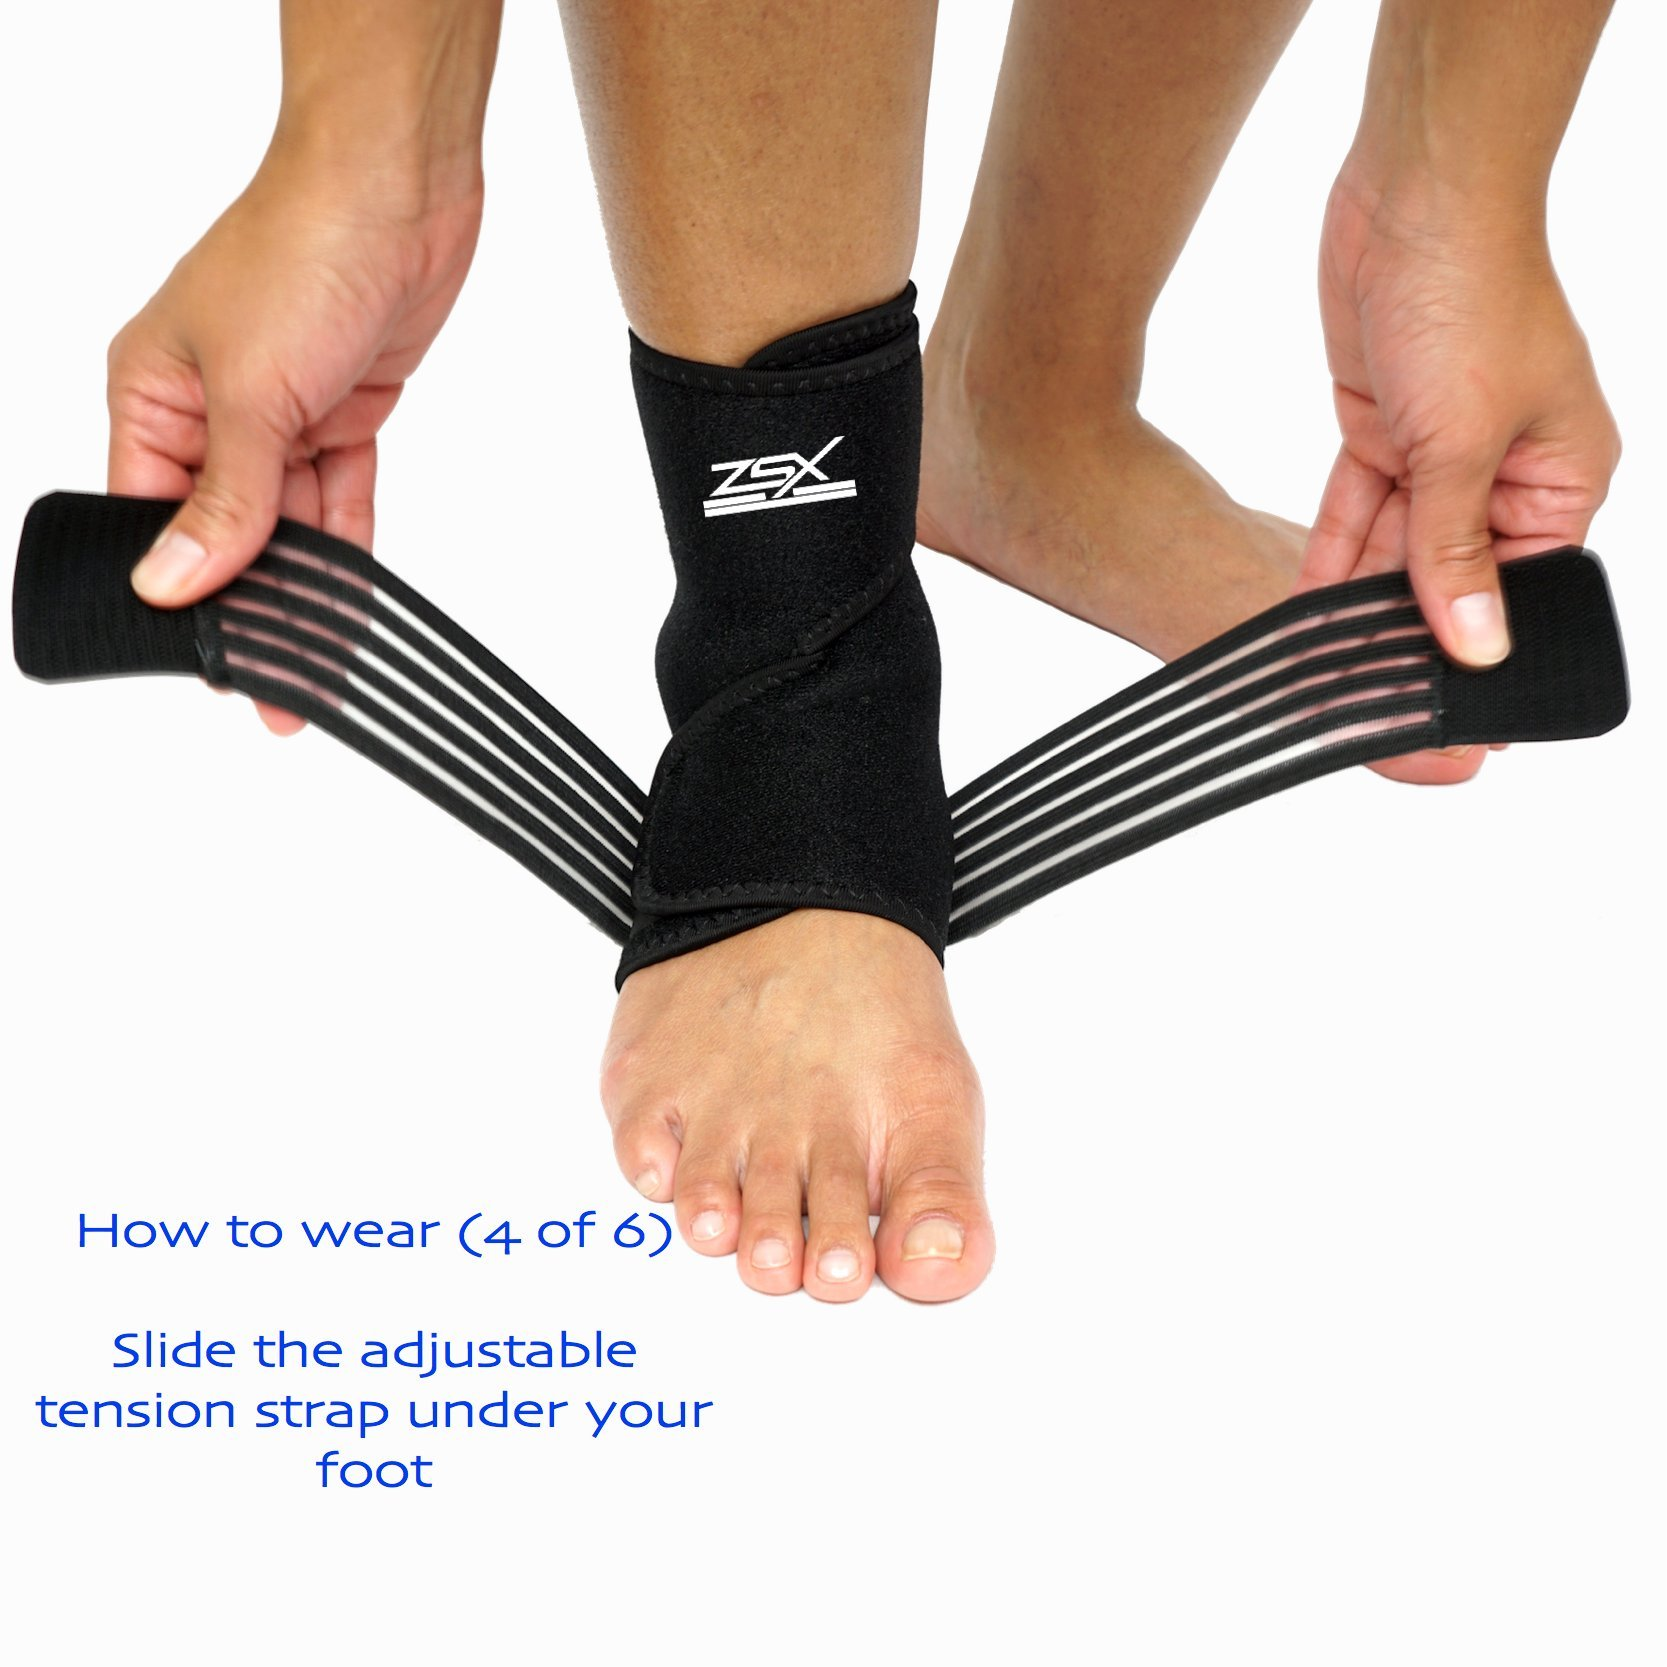 Ankle Brace (PAIR) with Bonus Straps, for Ankle Support, Plantar Fasciitis, or Swollen Ankles, One Size Fits Most, By ZSX SPORT (Foot Size - Reg) by ZSX (Image #6)